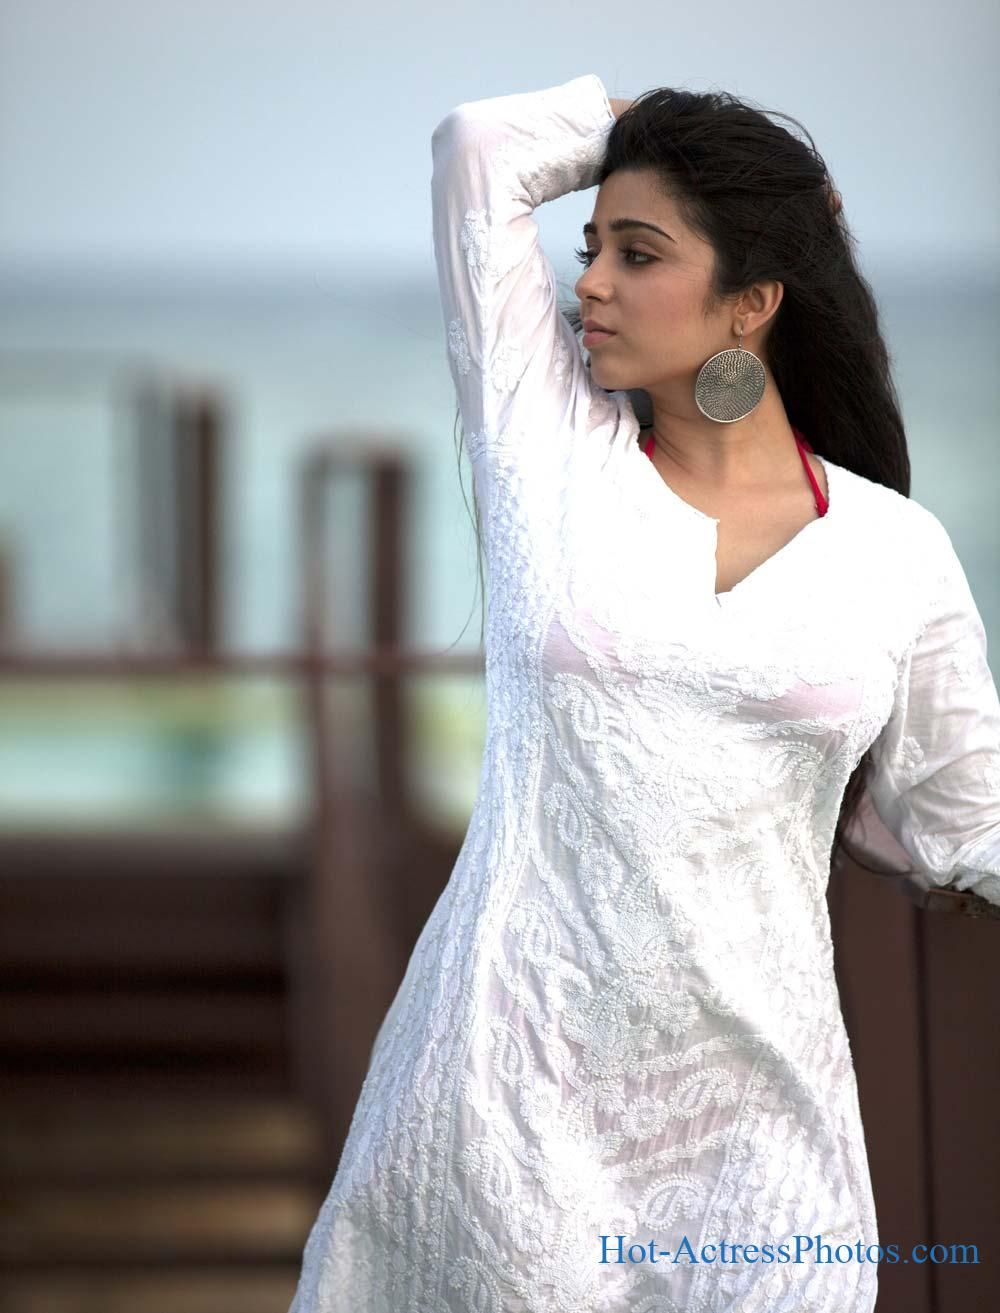 Charmi Kaur Hot Beach Photoshoot Stills